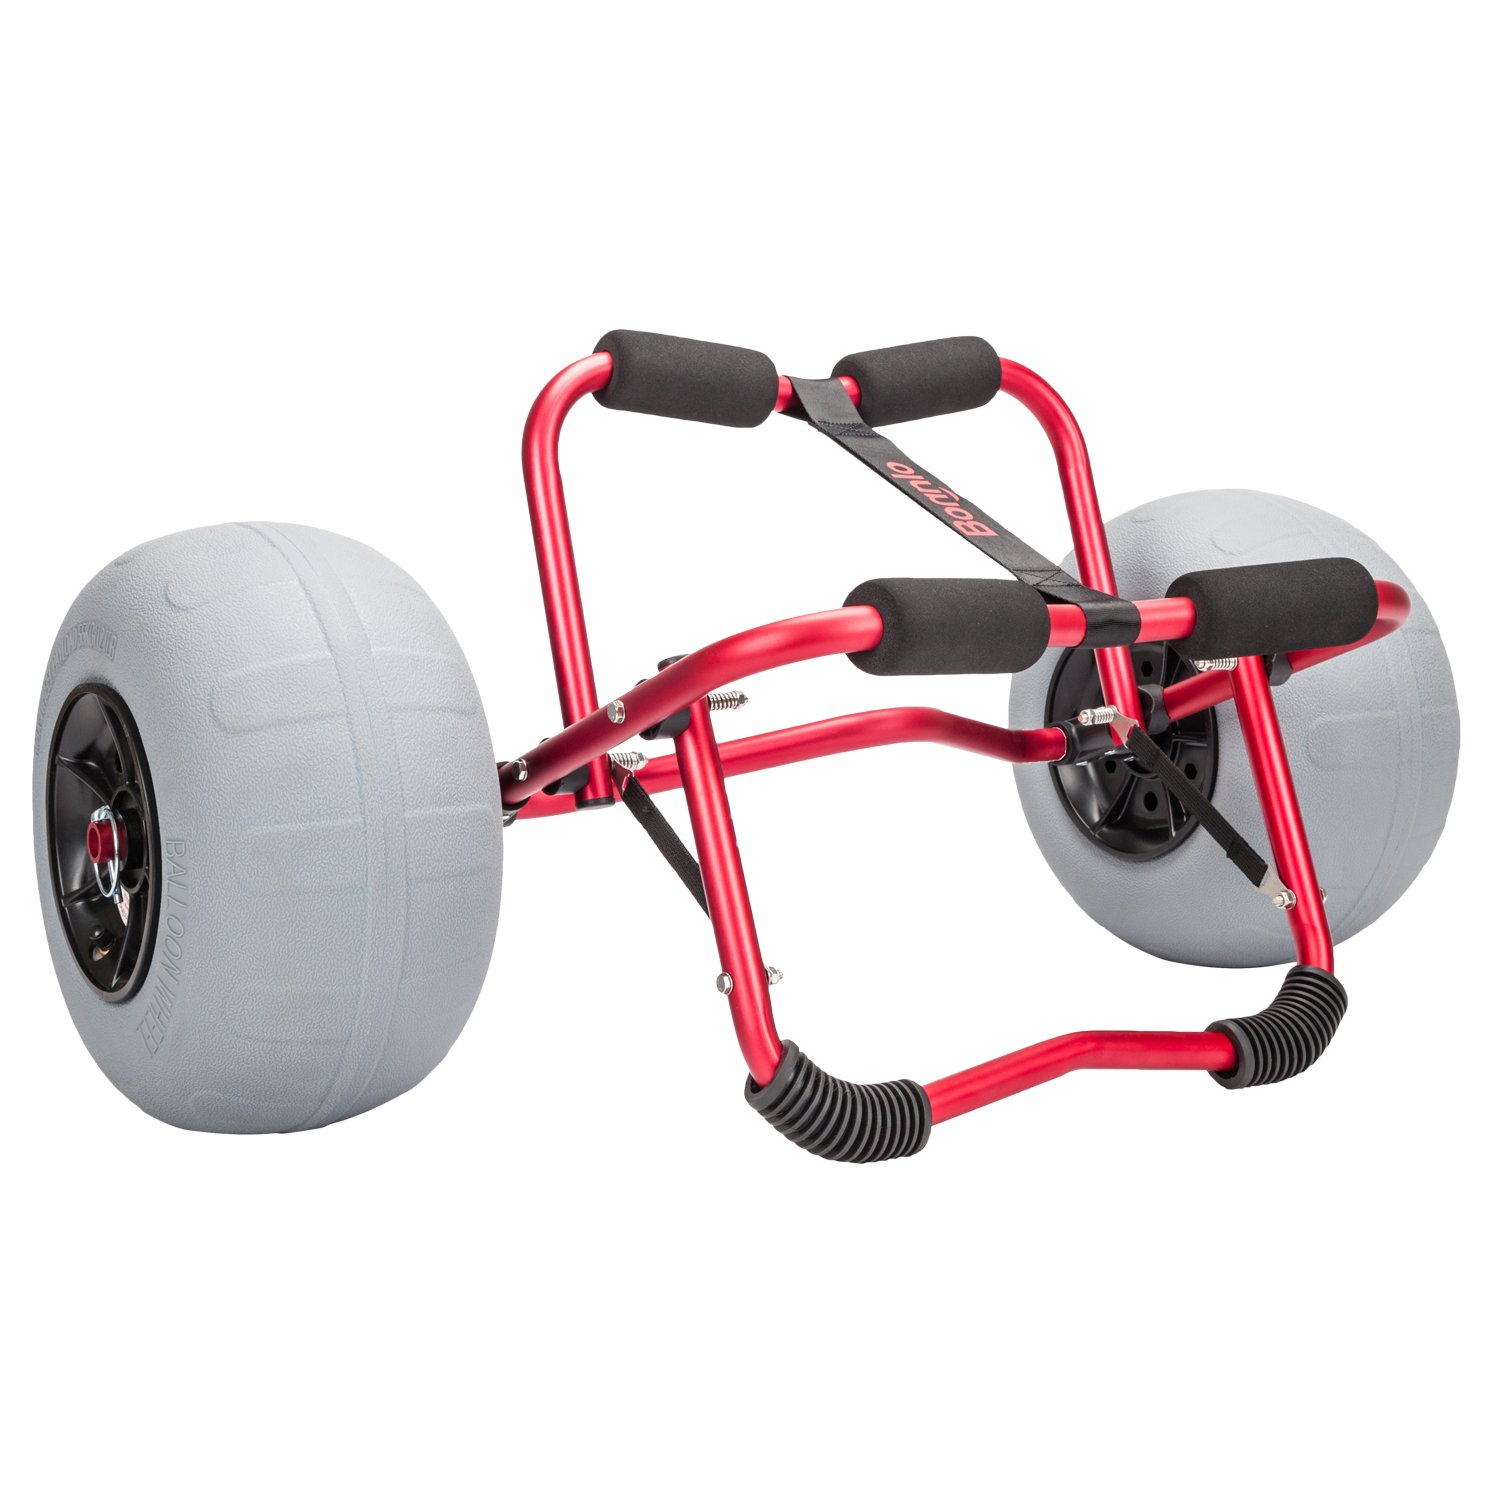 Bonnlo Kayak Canoe Boat Cart Carrier Dolly Trolley with 12'' Big Beach Balloon Tires Wheels - Free Pump and Strap - Perfect for Soft Sand by Bonnlo